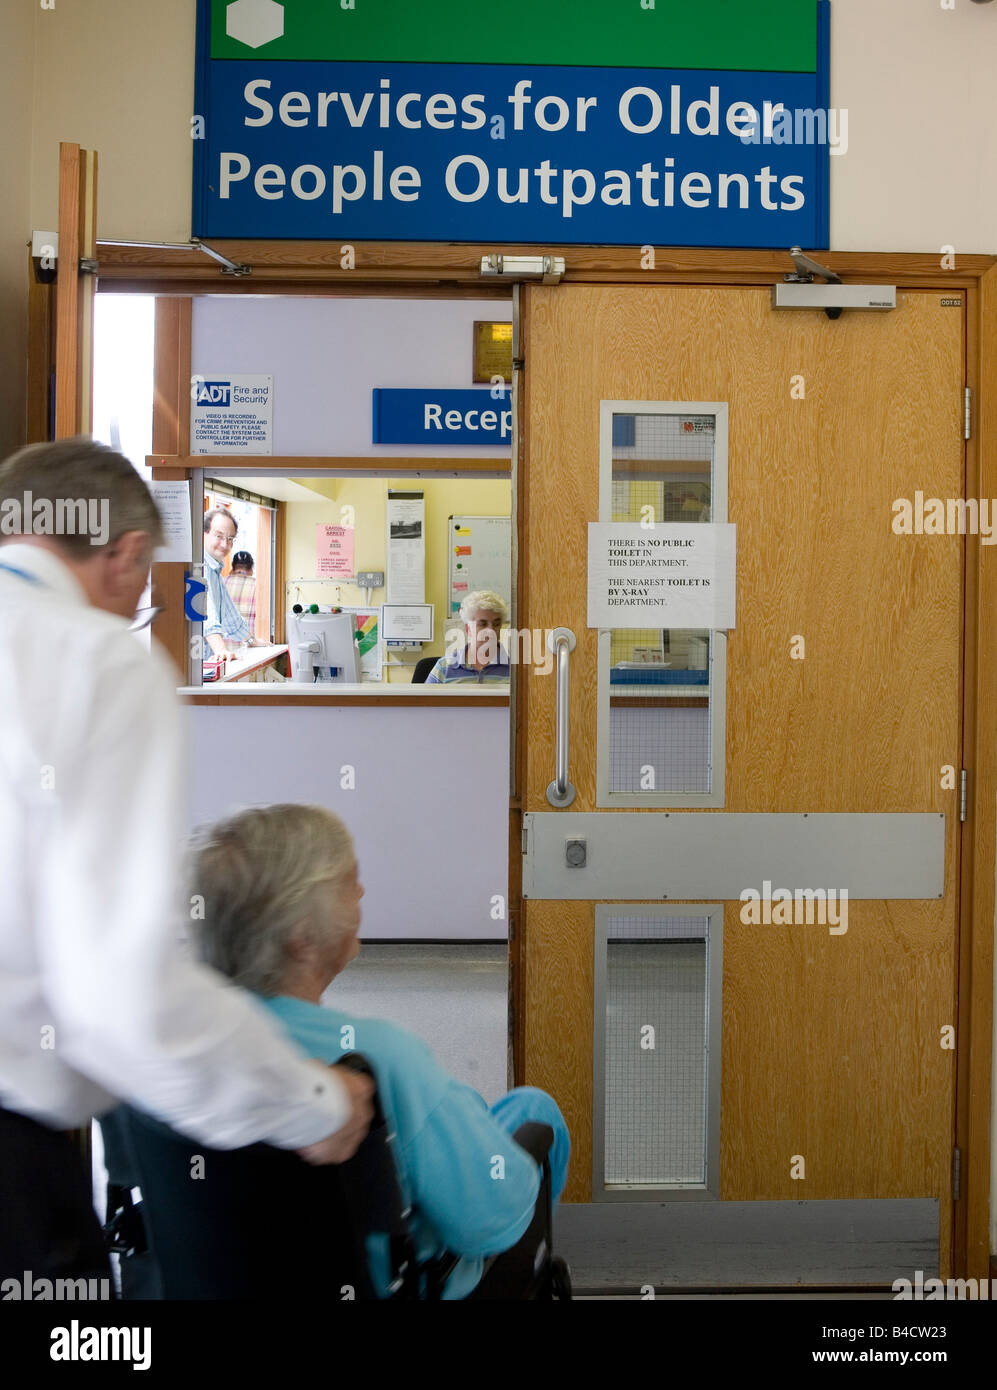 Adult Clinic, Pushkino: services, address and reviews 50